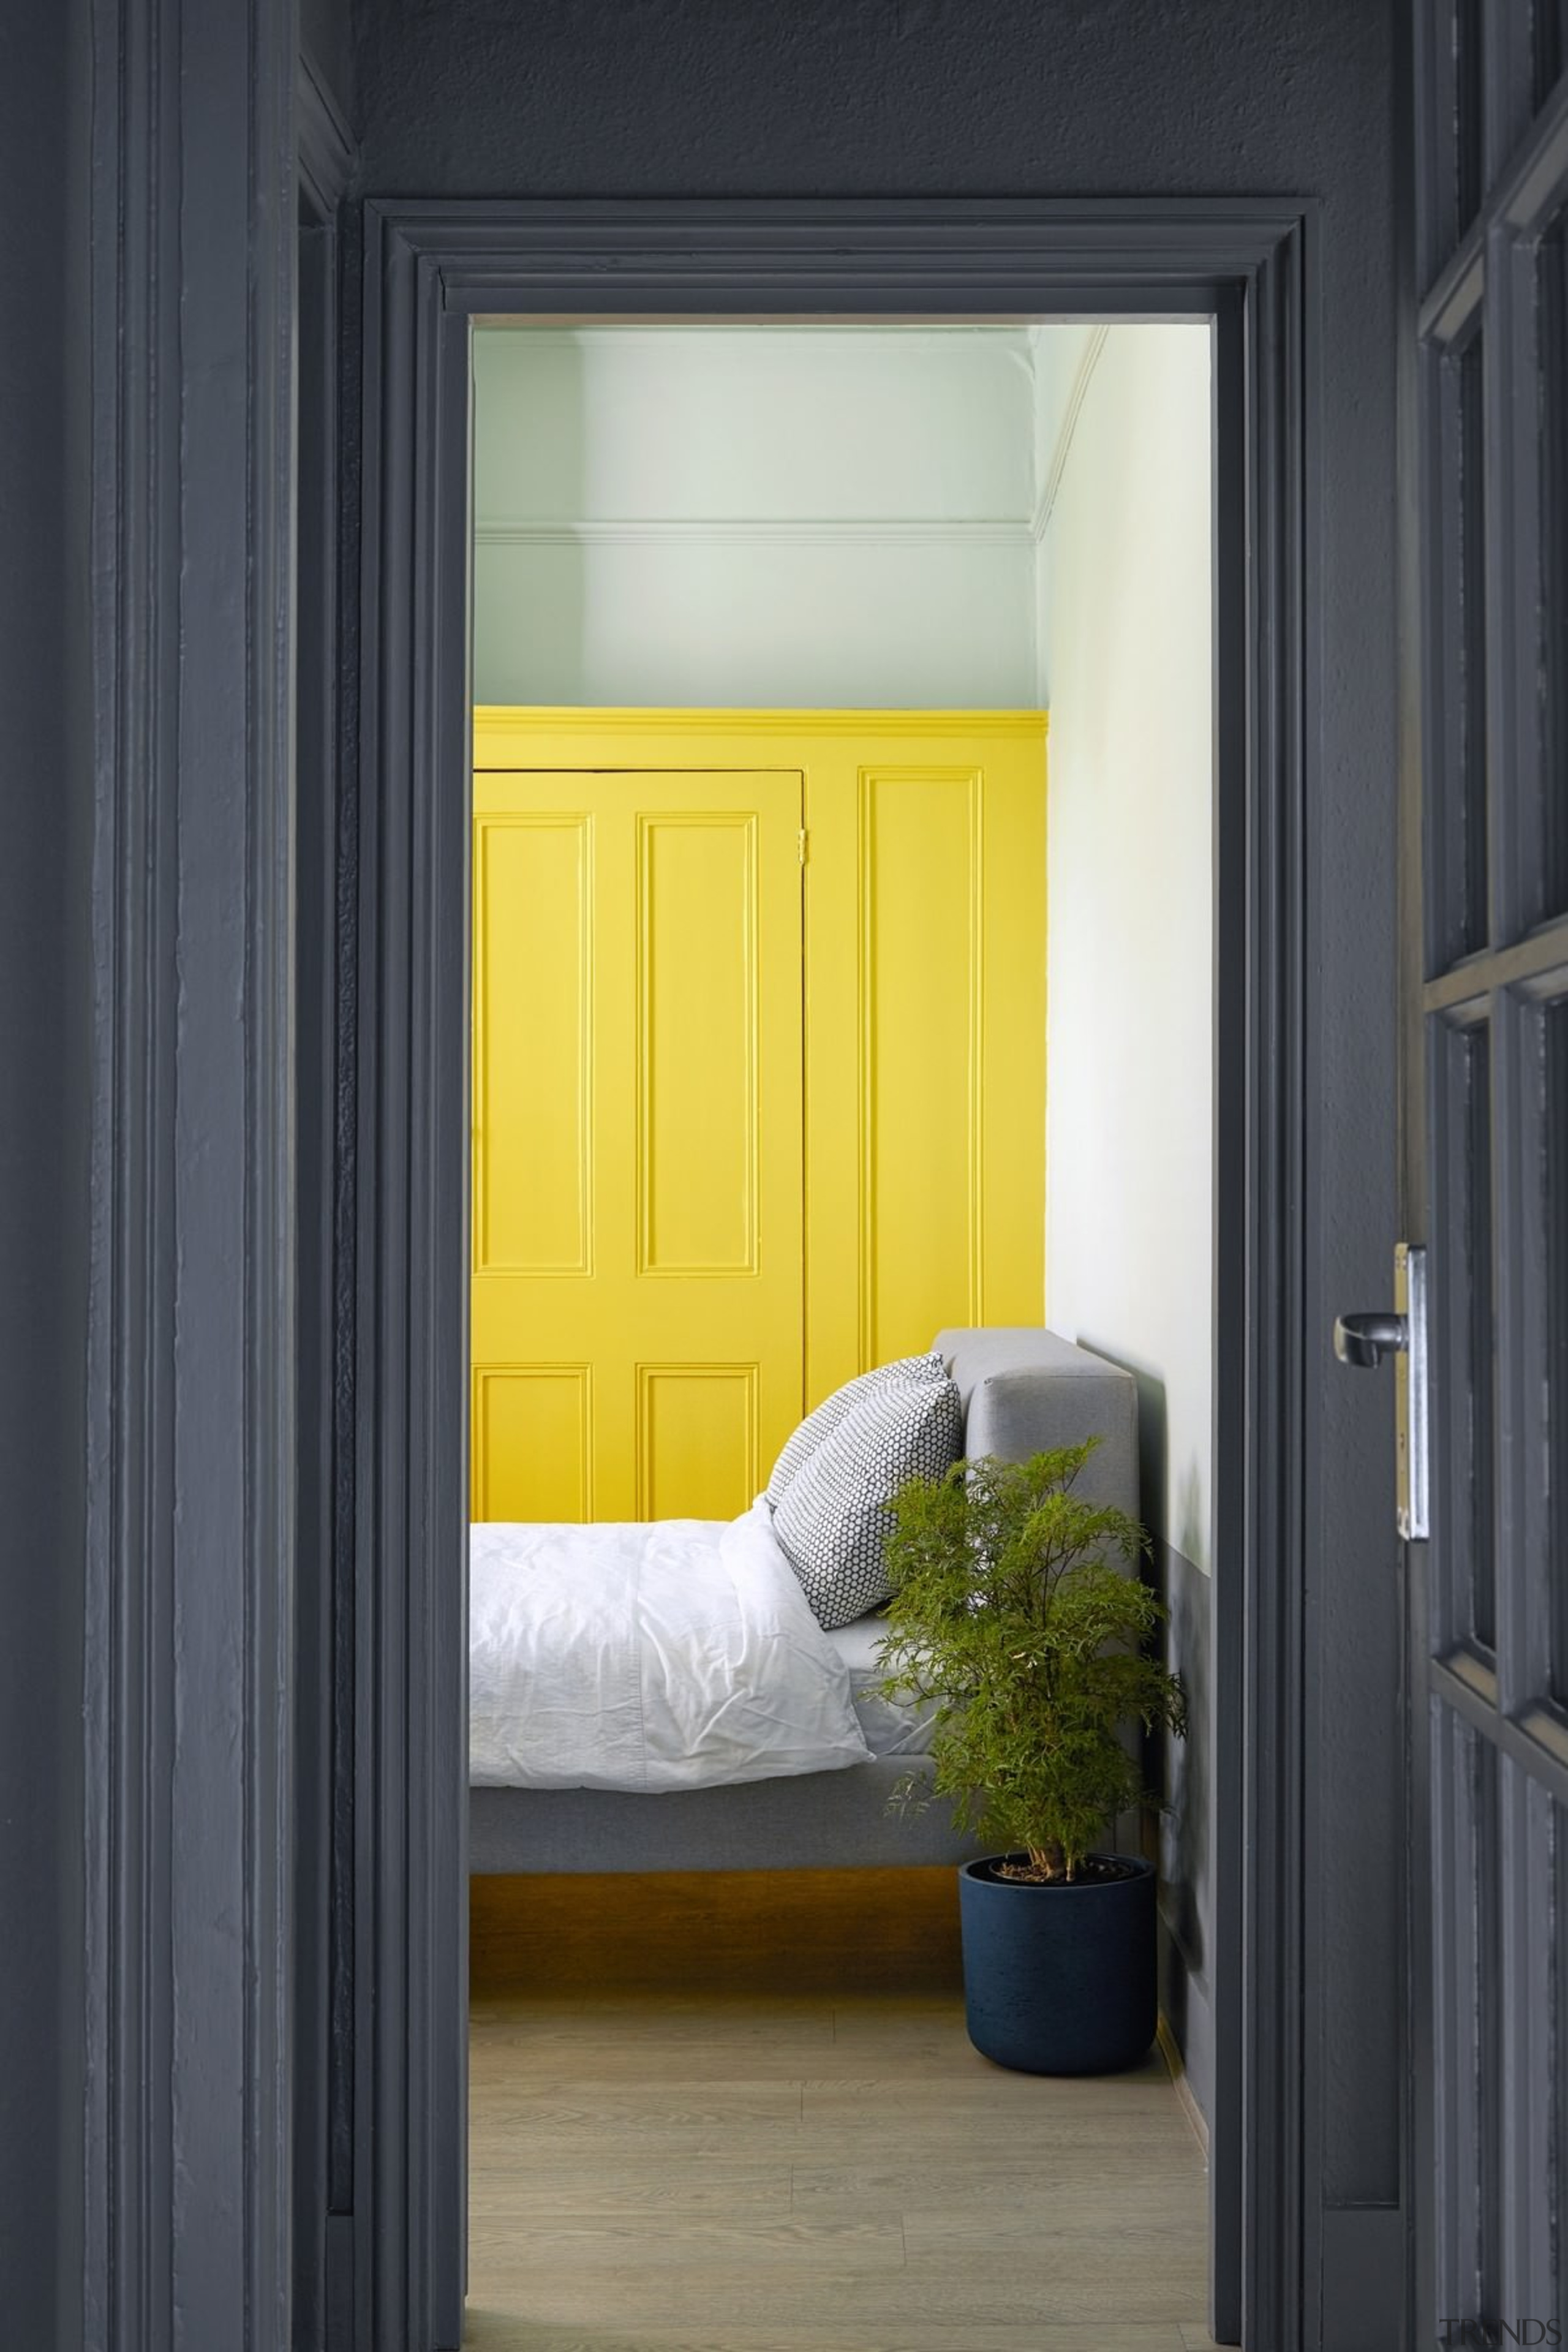 Looking into the bedroom - Looking into the door, home, house, interior design, window, yellow, black, gray